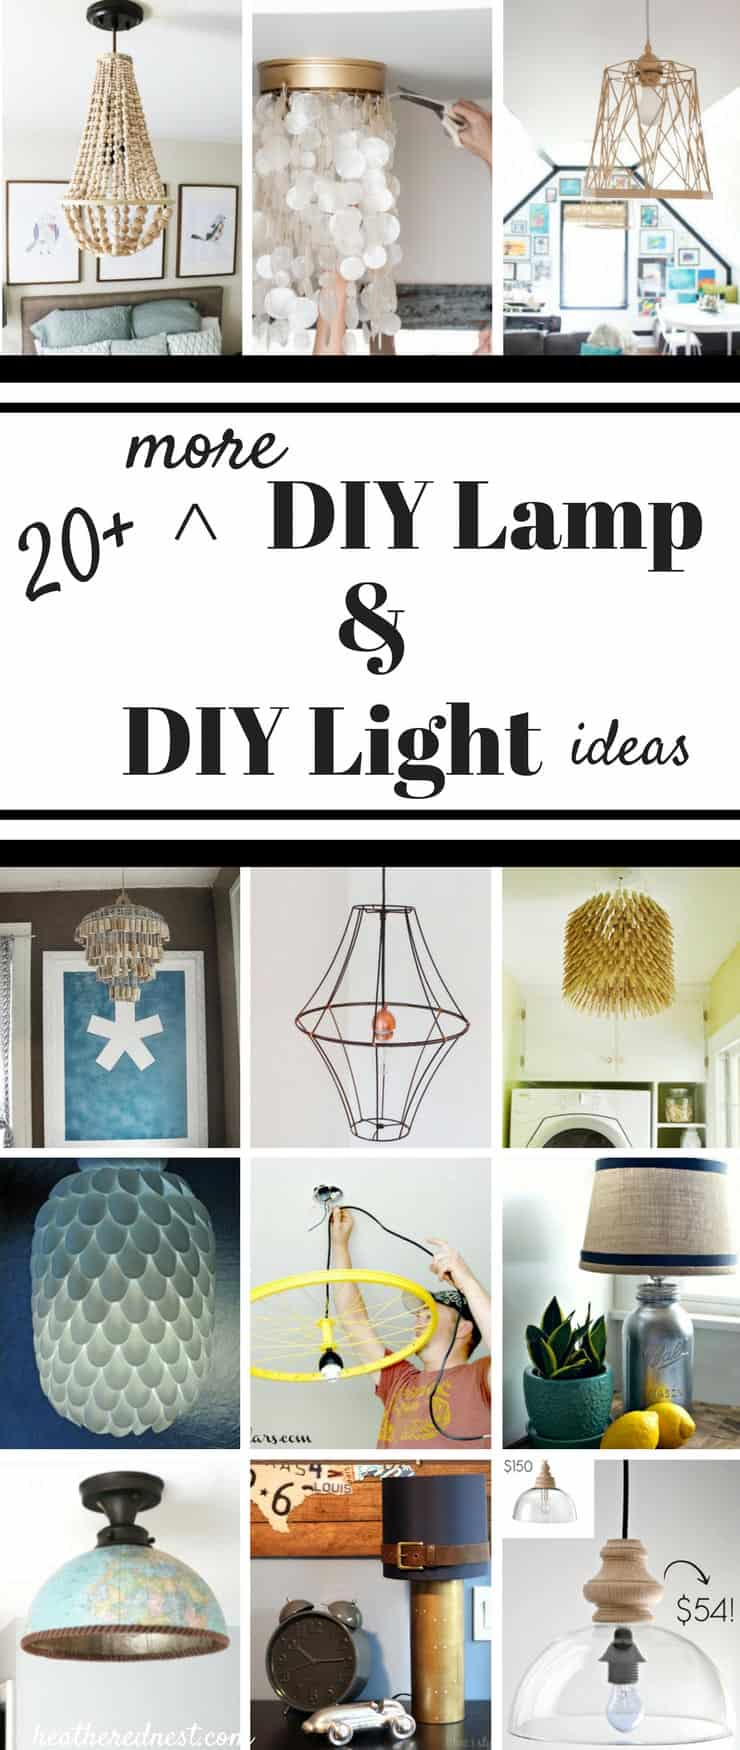 20 more diy lampshade diy light and diy lamp ideas heathered nest